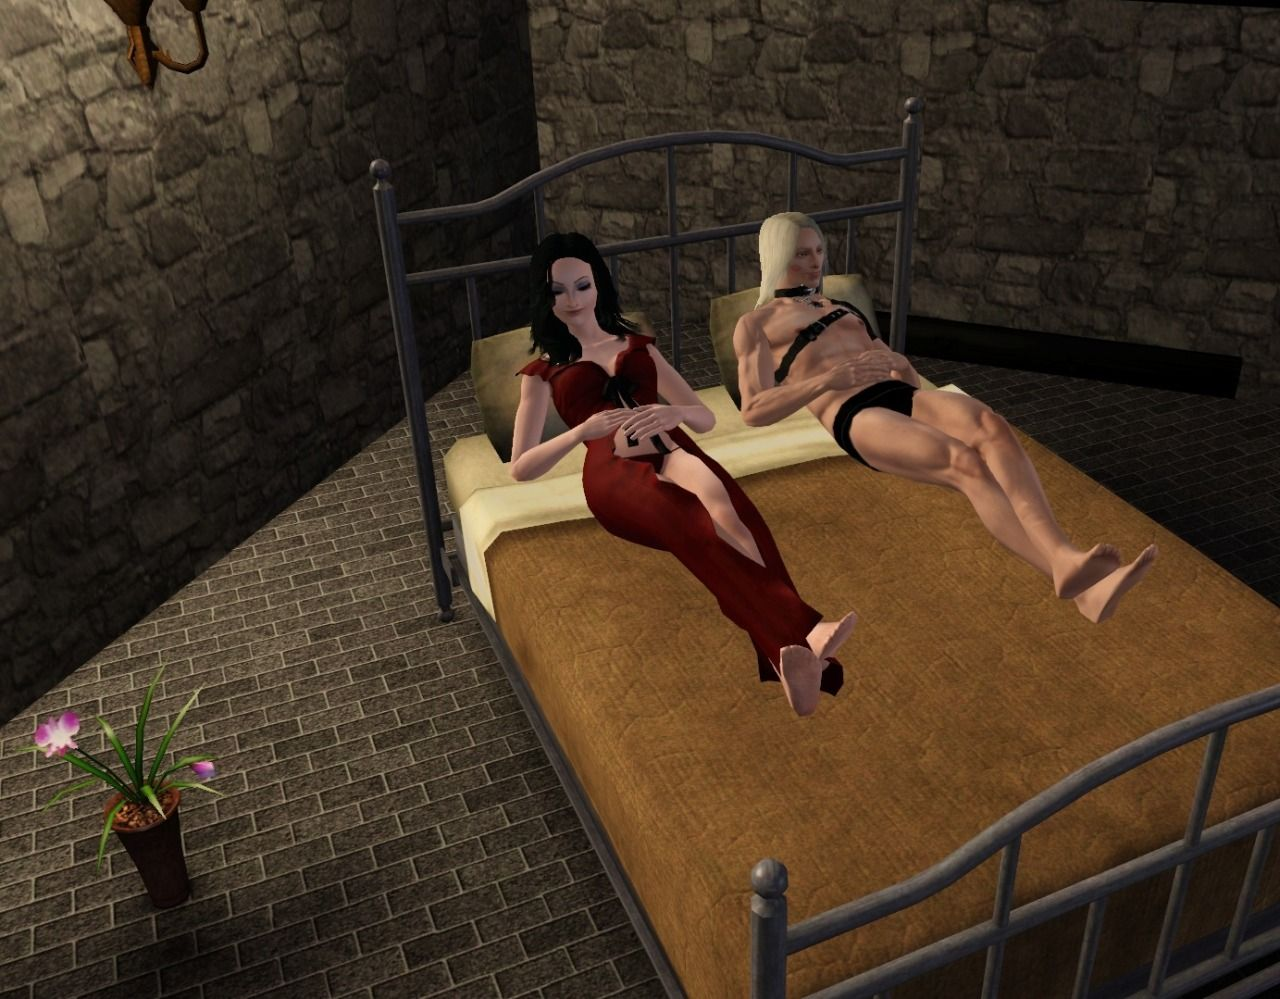 Sims 3 Mod That Allows Your Sims To Make Love For Money Unfortunately It Doesnt Use Animated Woohoo Mods For The Link Look Here